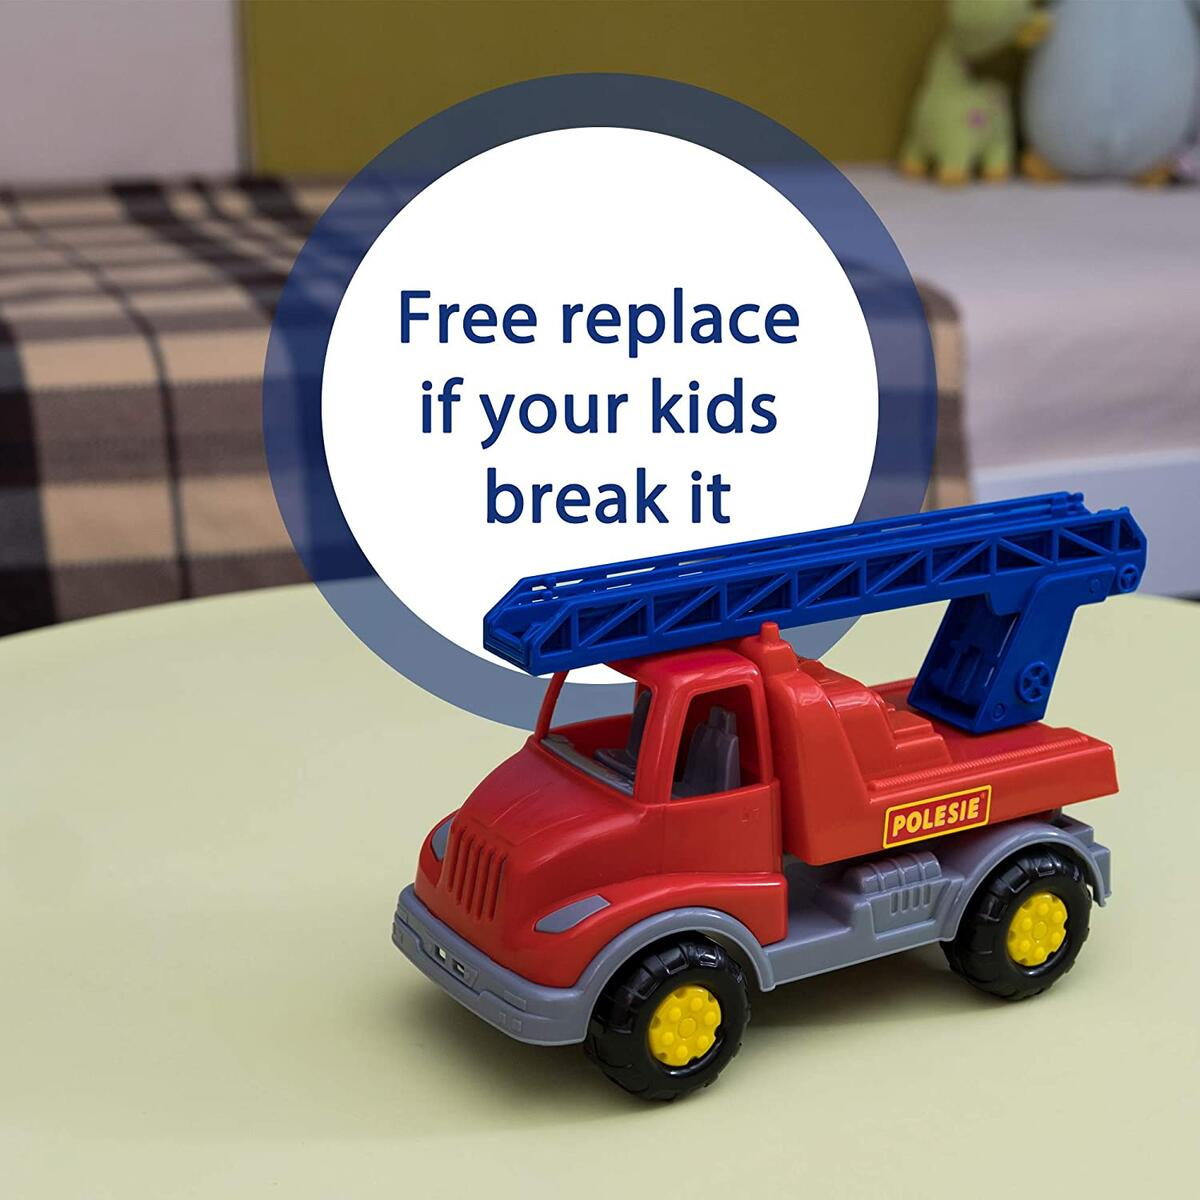 Fire Trucks for Toddlers - Fire Engine Toy for Boys Age 2-3 with Working Ladder - Construction Vehicle Toys by Polesie